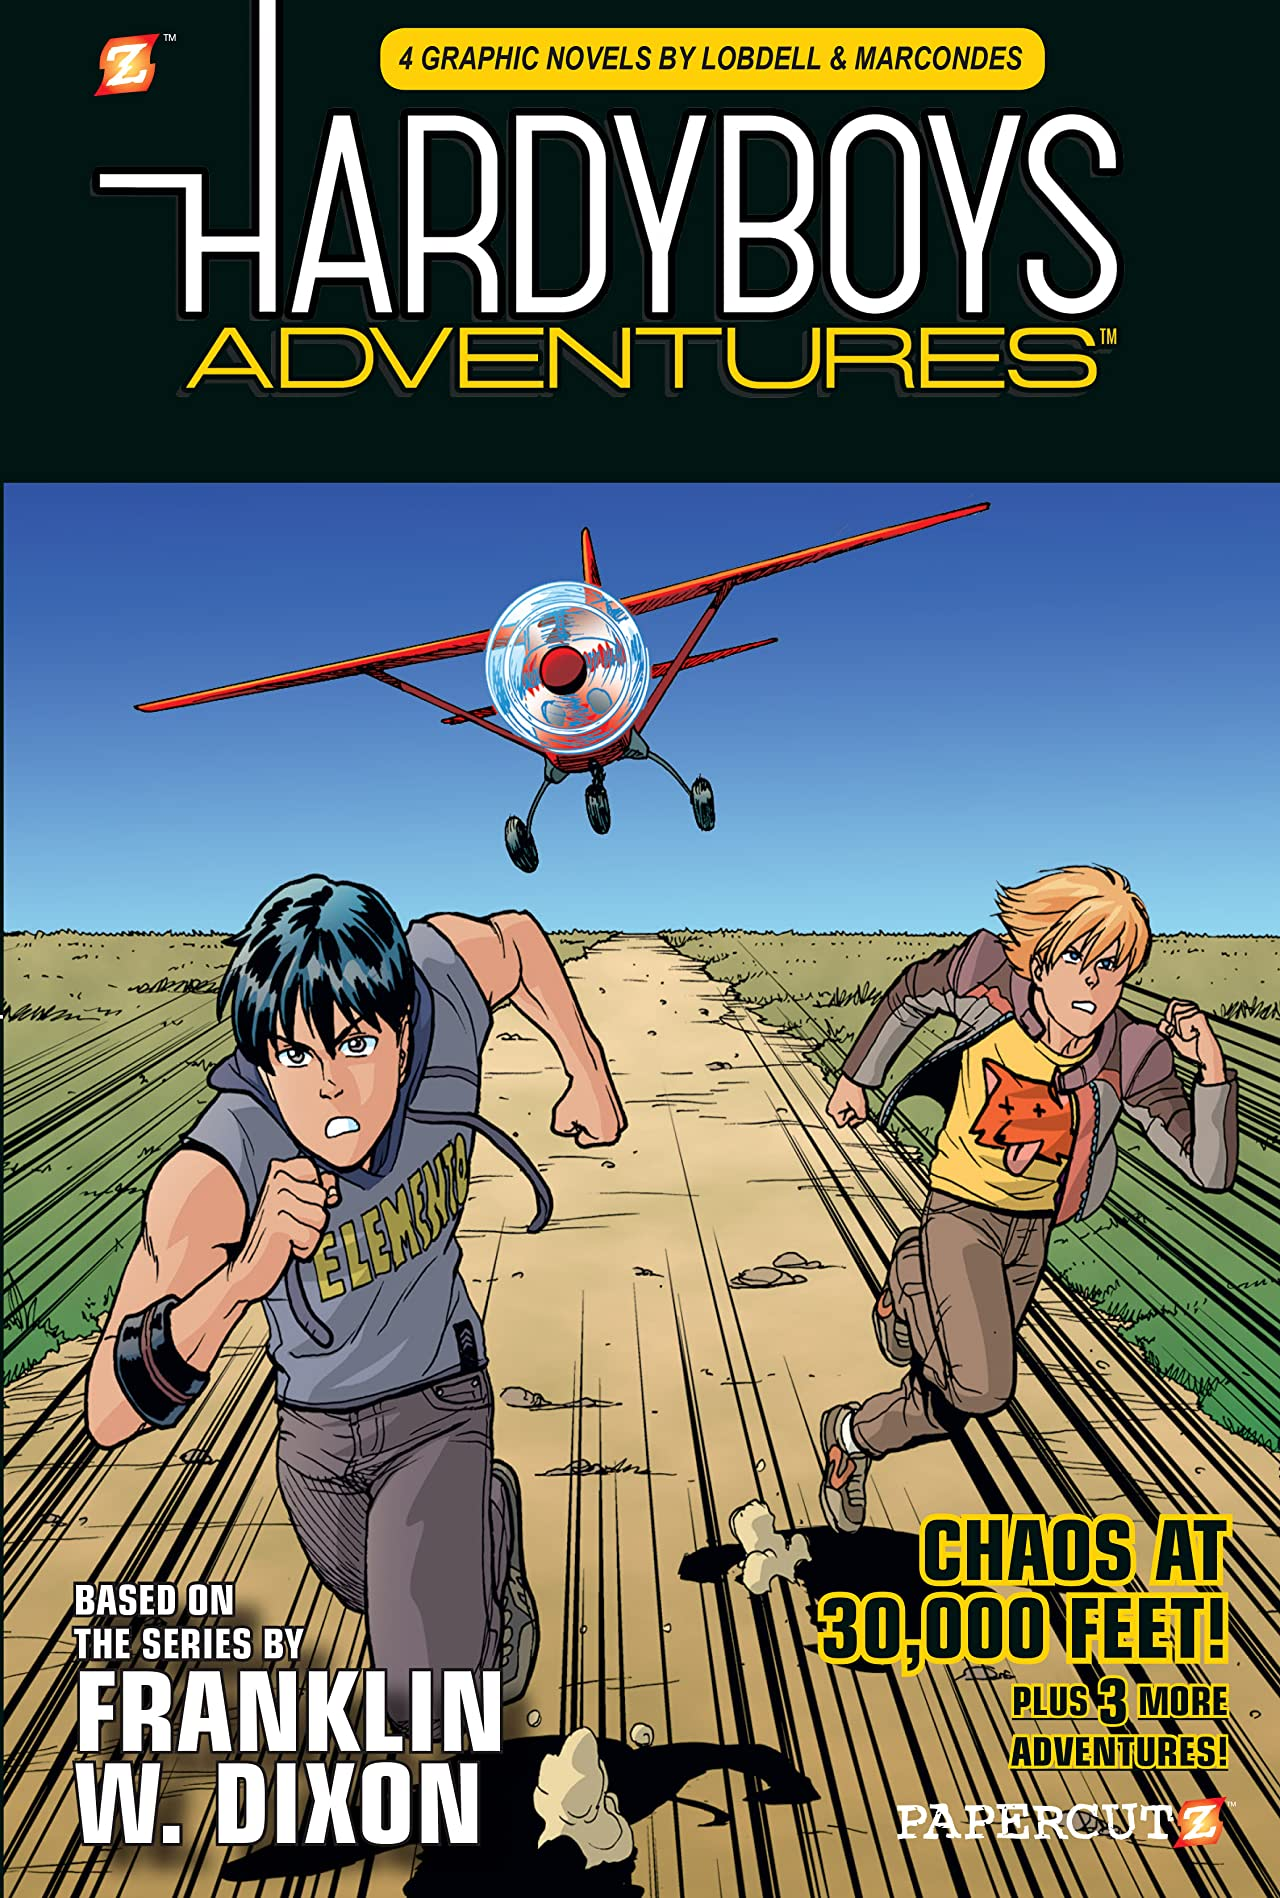 The Hardy Boys Adventures Vol. 3